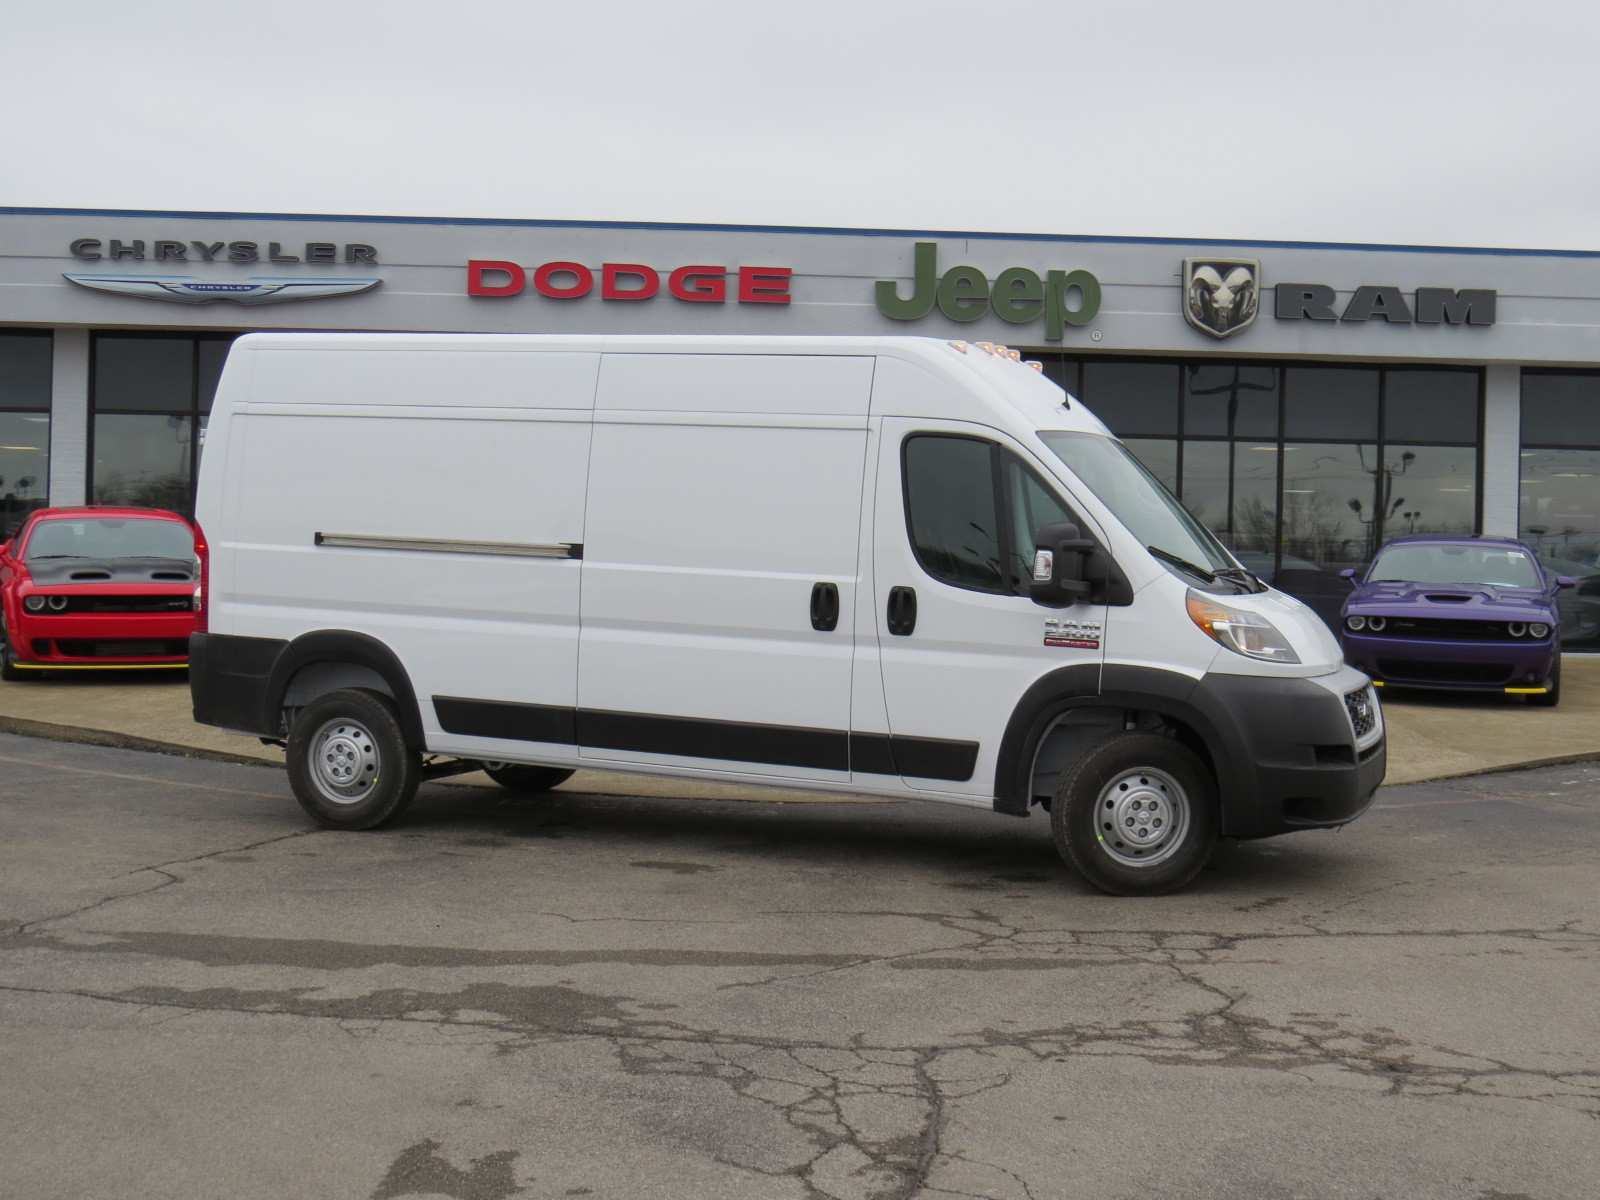 28 All New New Dodge Promaster 2019 New Engine Pictures with New Dodge Promaster 2019 New Engine